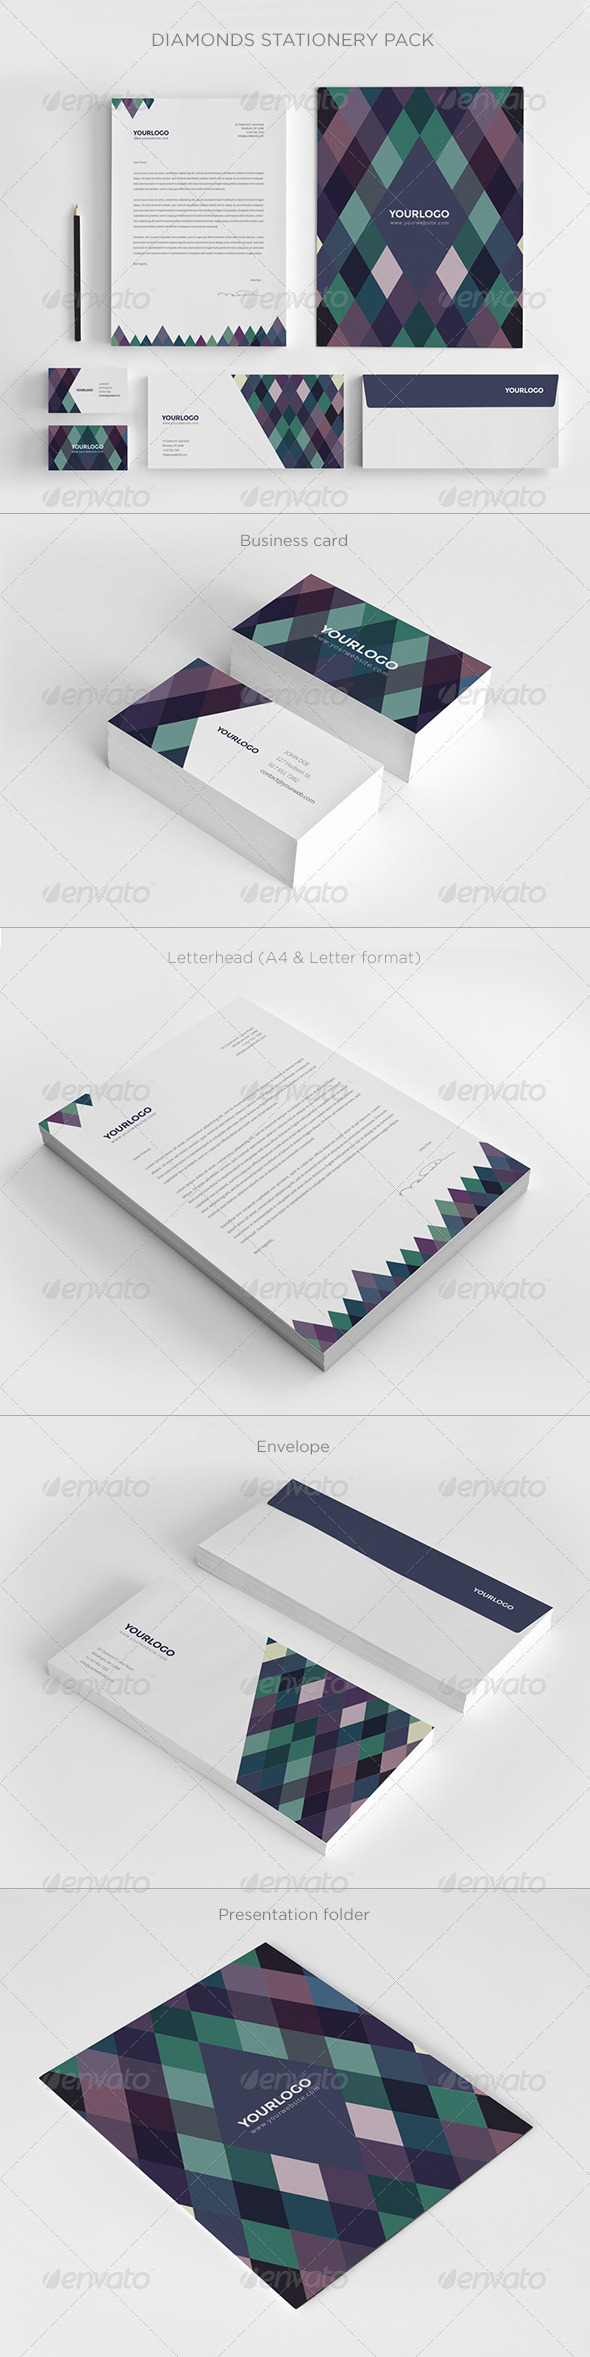 GraphicRiver Diamonds Stationery Pack 7003580